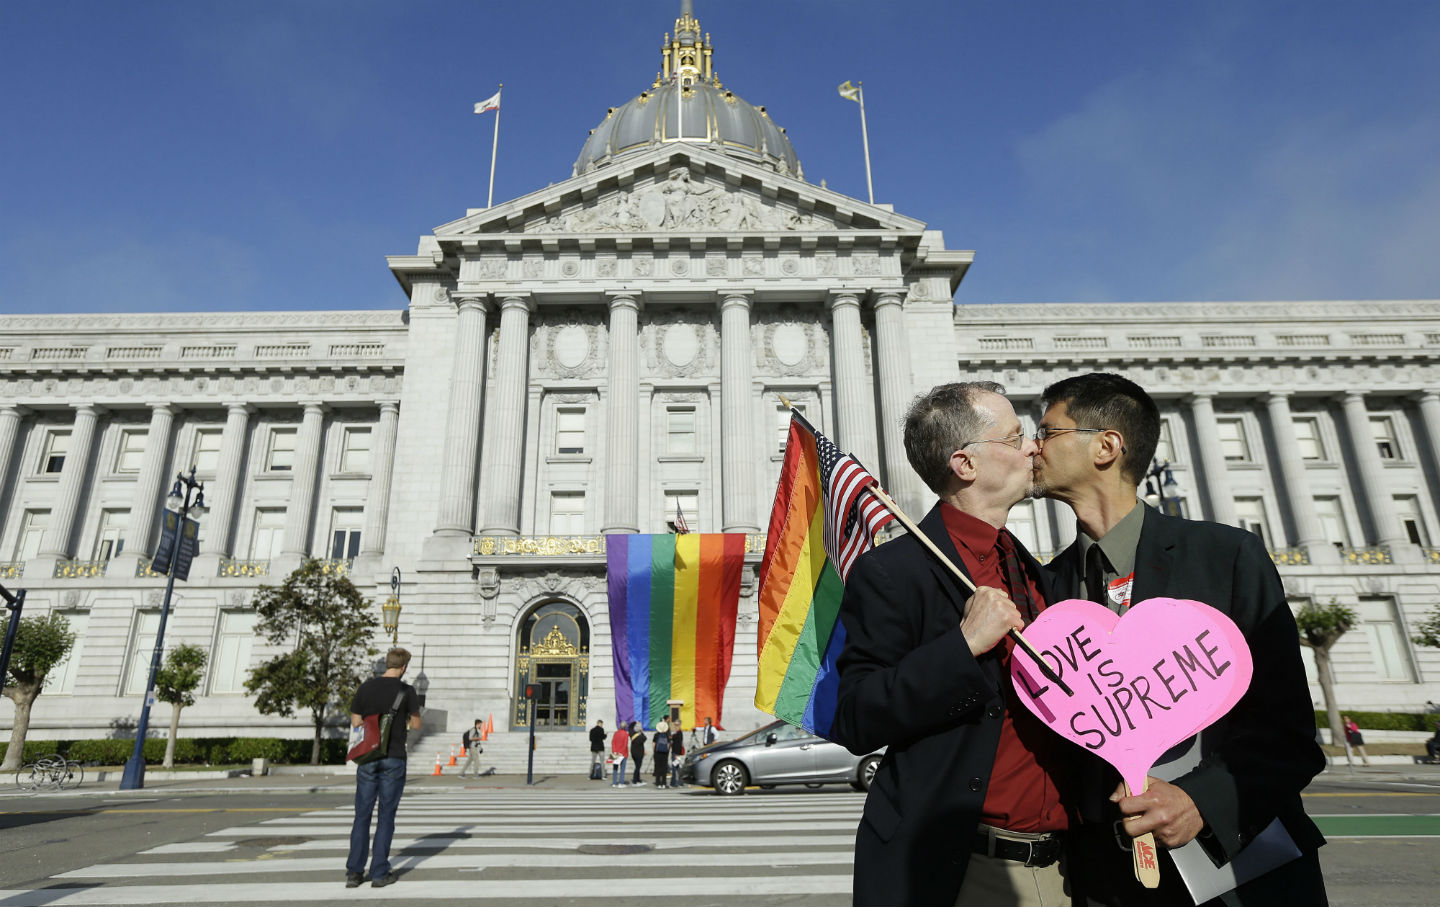 ca gay marriage supreme court